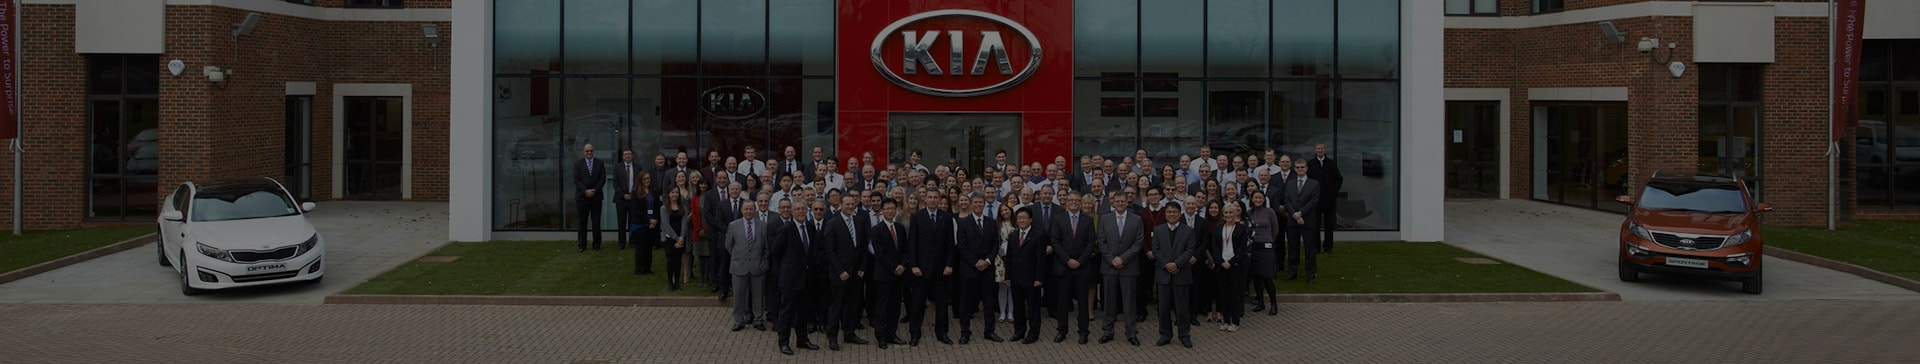 Group of Kia employees standing in front of Kia HQ